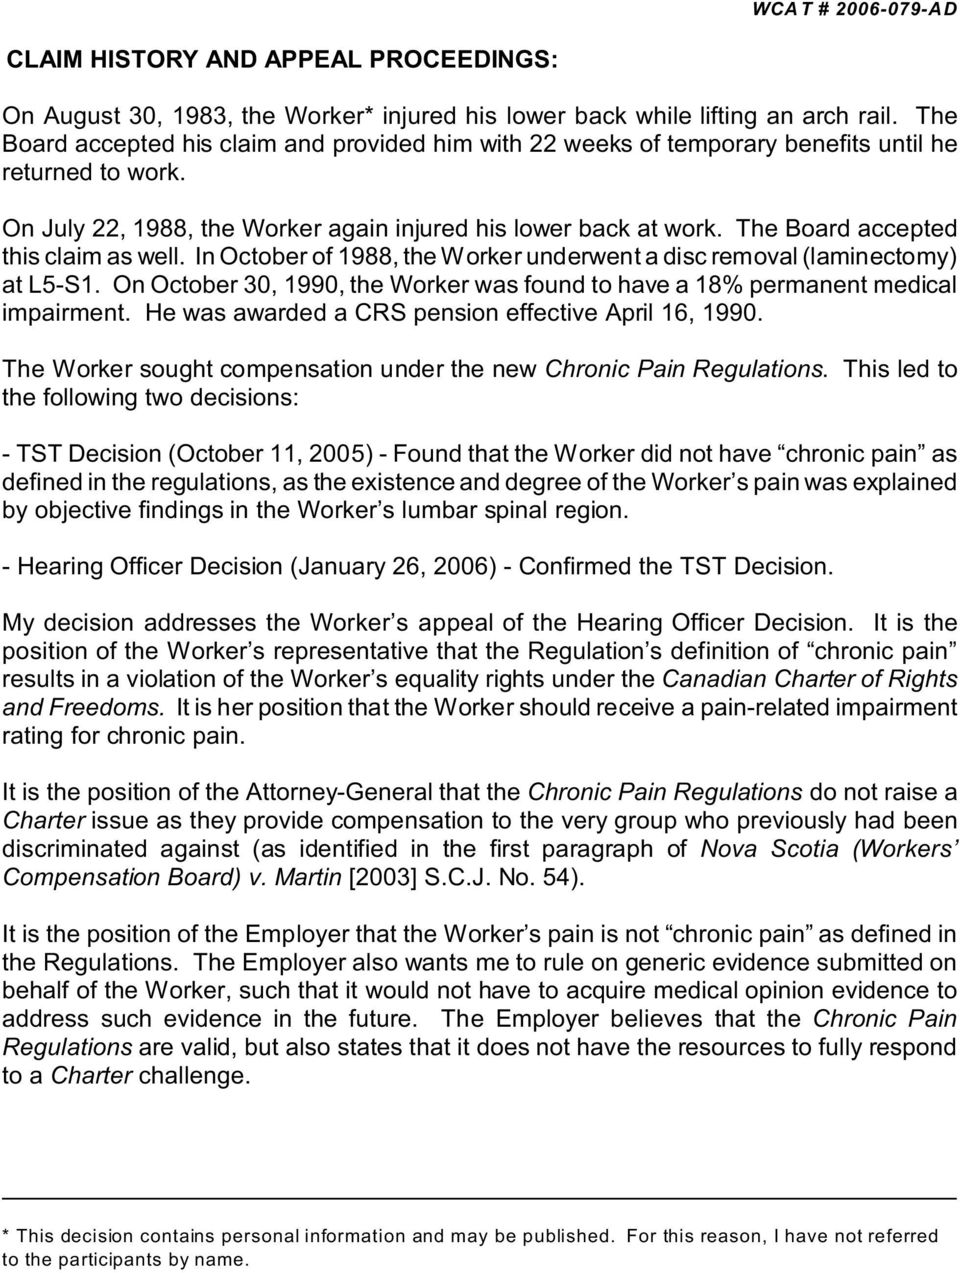 The Board accepted this claim as well. In October of 1988, the Worker underwent a disc removal (laminectomy) at L5-S1.